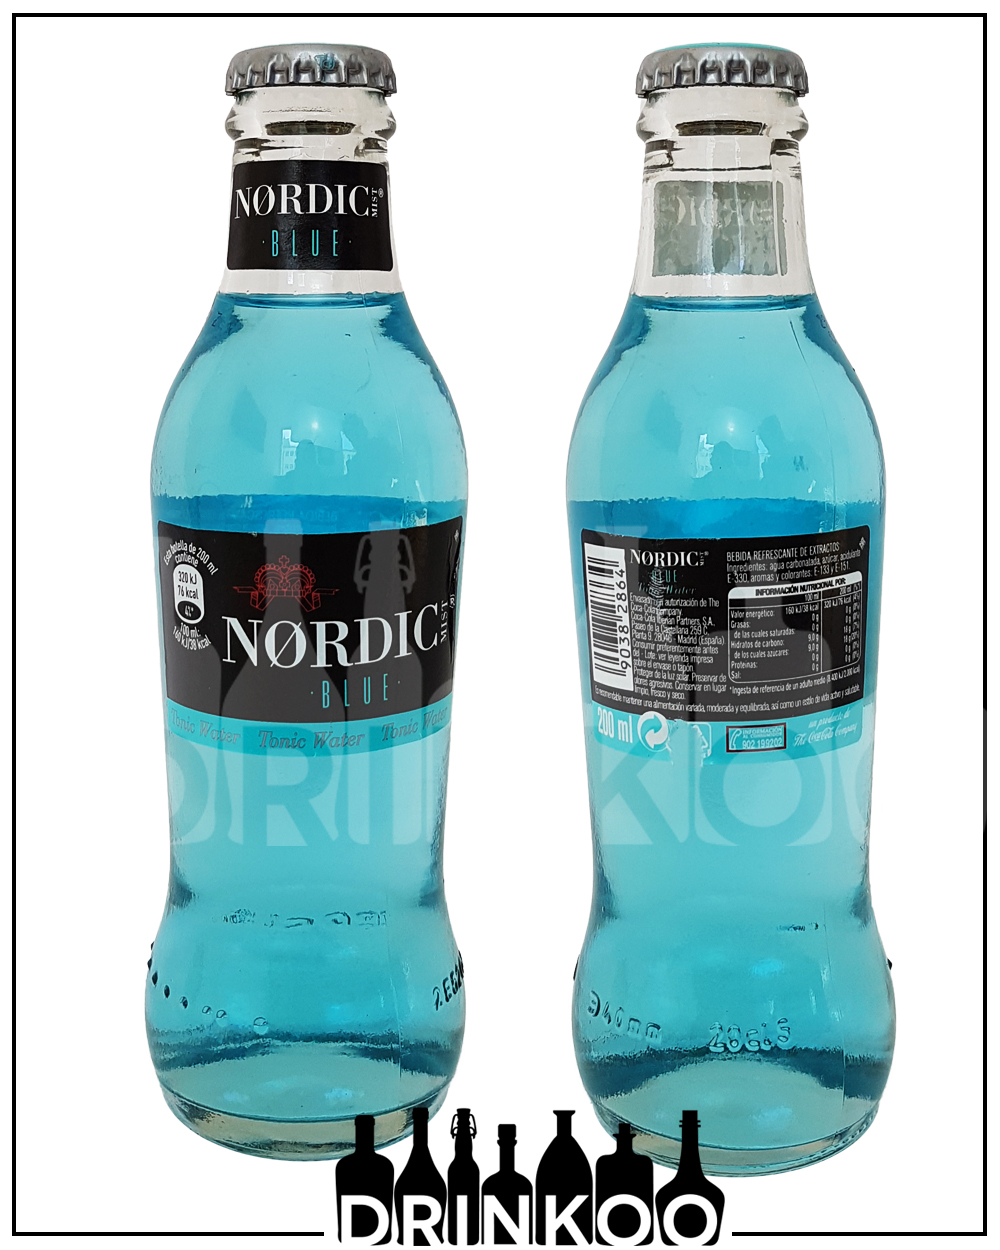 Nordic Blue Tonic Water